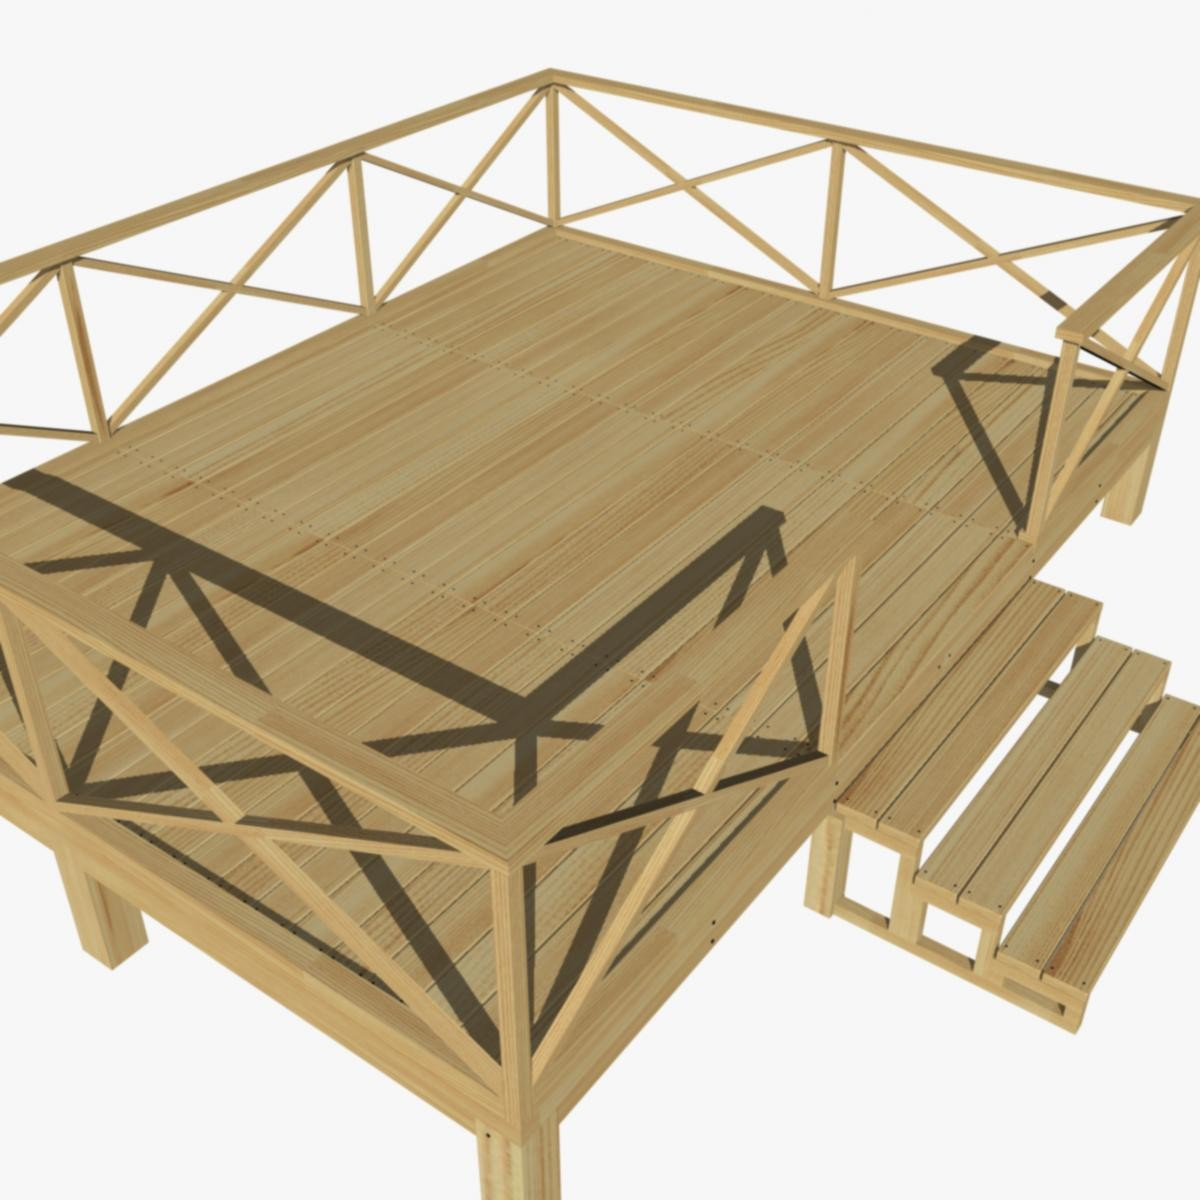 render_Terrace_Wood_1_turntable_1-0017.jpg